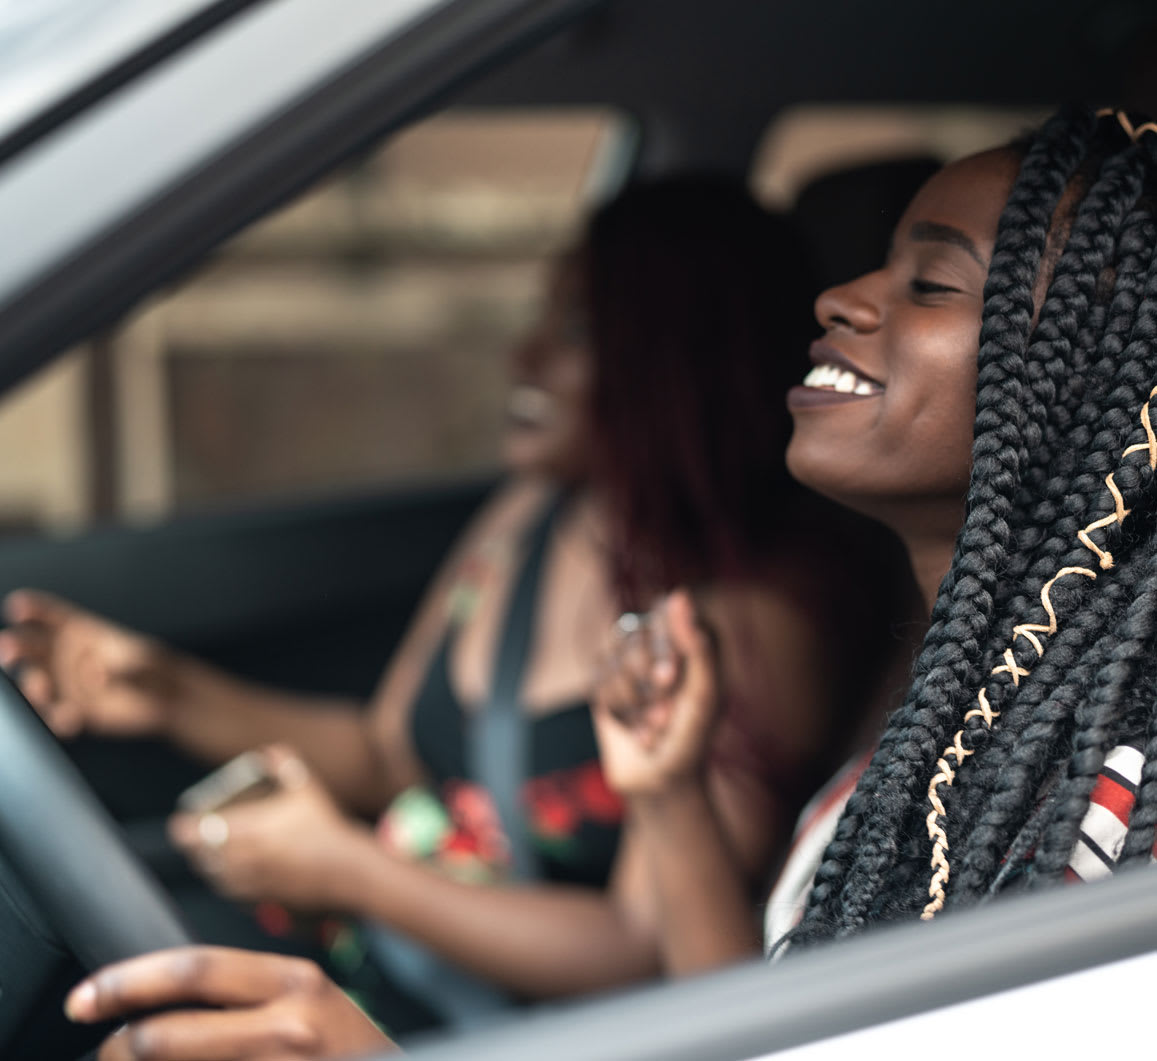 Smiling woman and friend in electric car